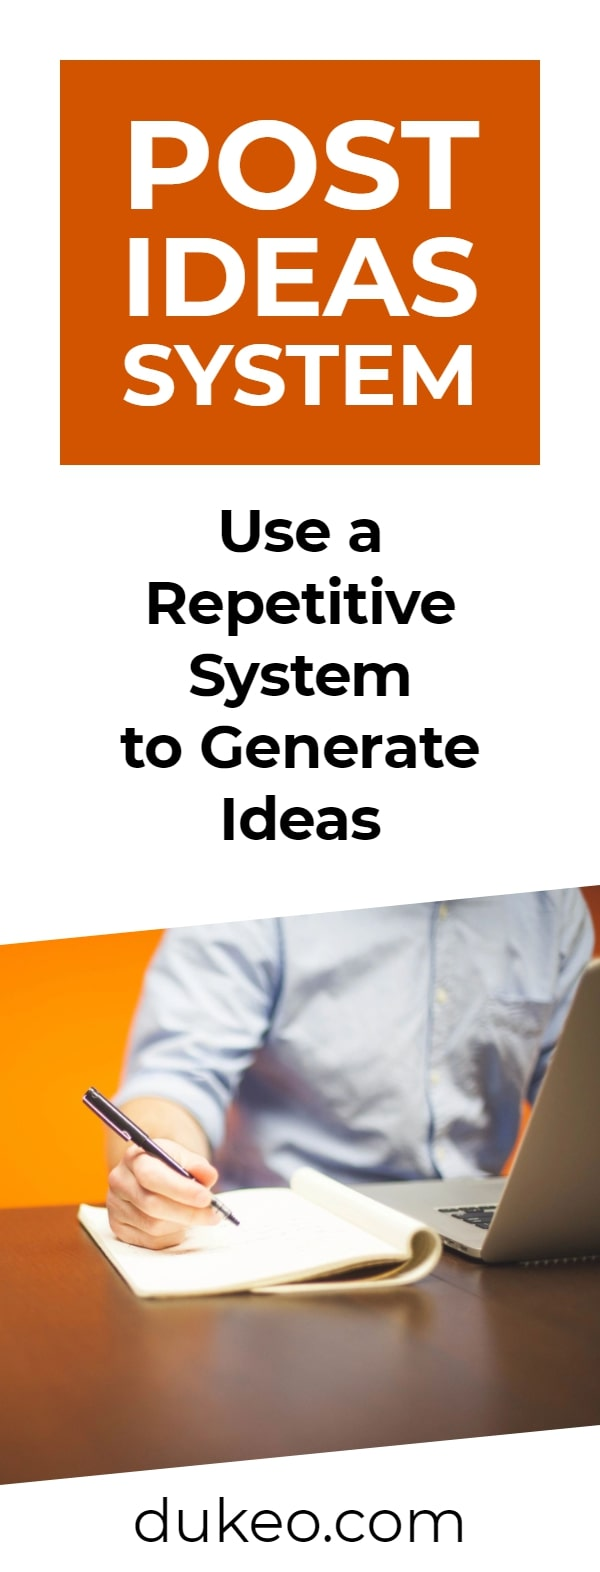 Post Ideas System: Use a Repetitive System to Generate Ideas